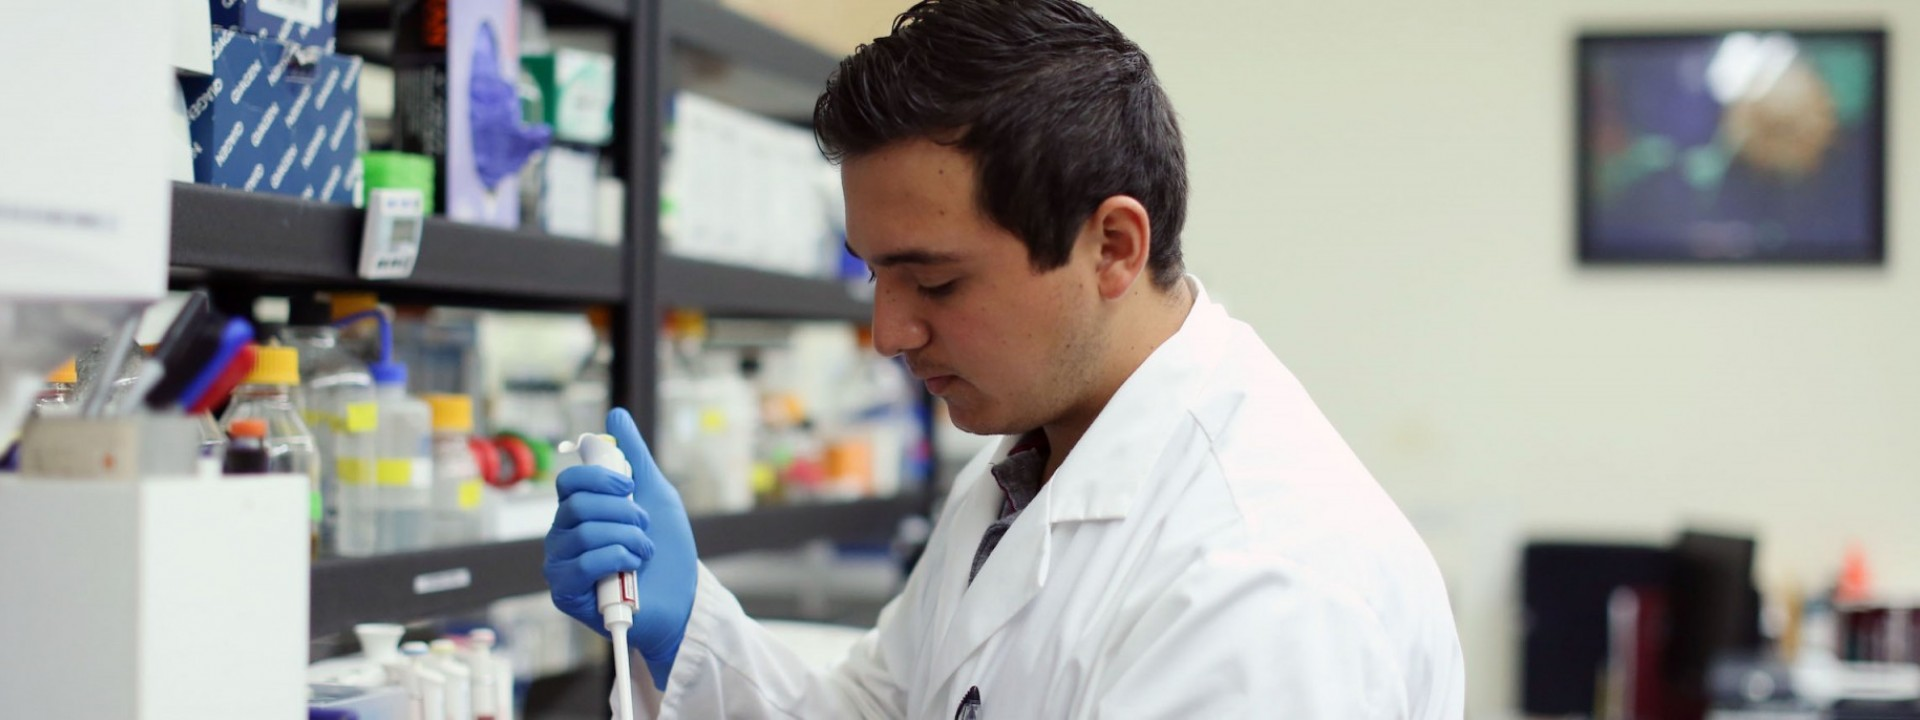 Image of the side profile of a student in a while lab coat and blue gloves using a lab instrument.